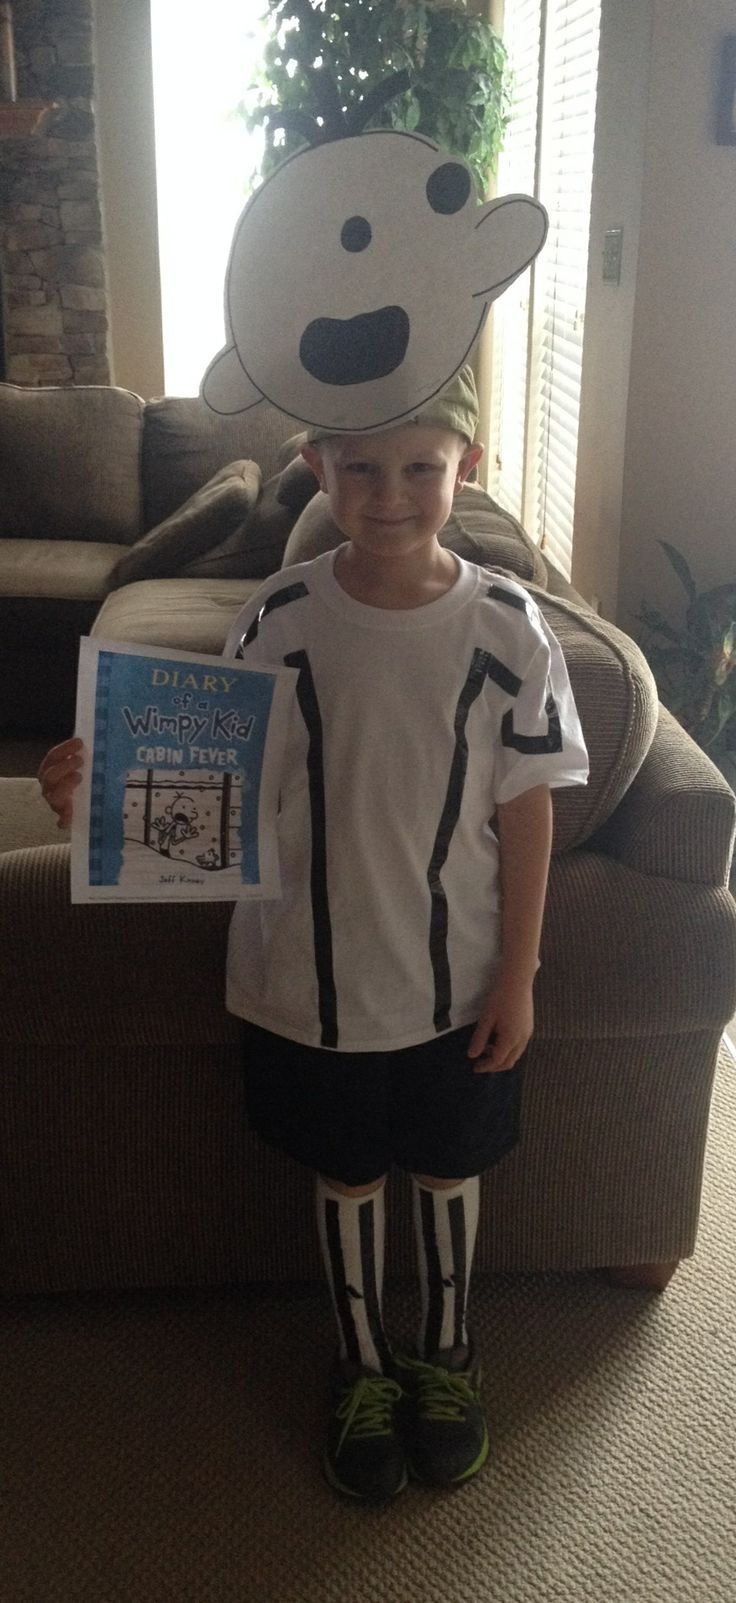 Diary of a wimpy kid character costume day for school.